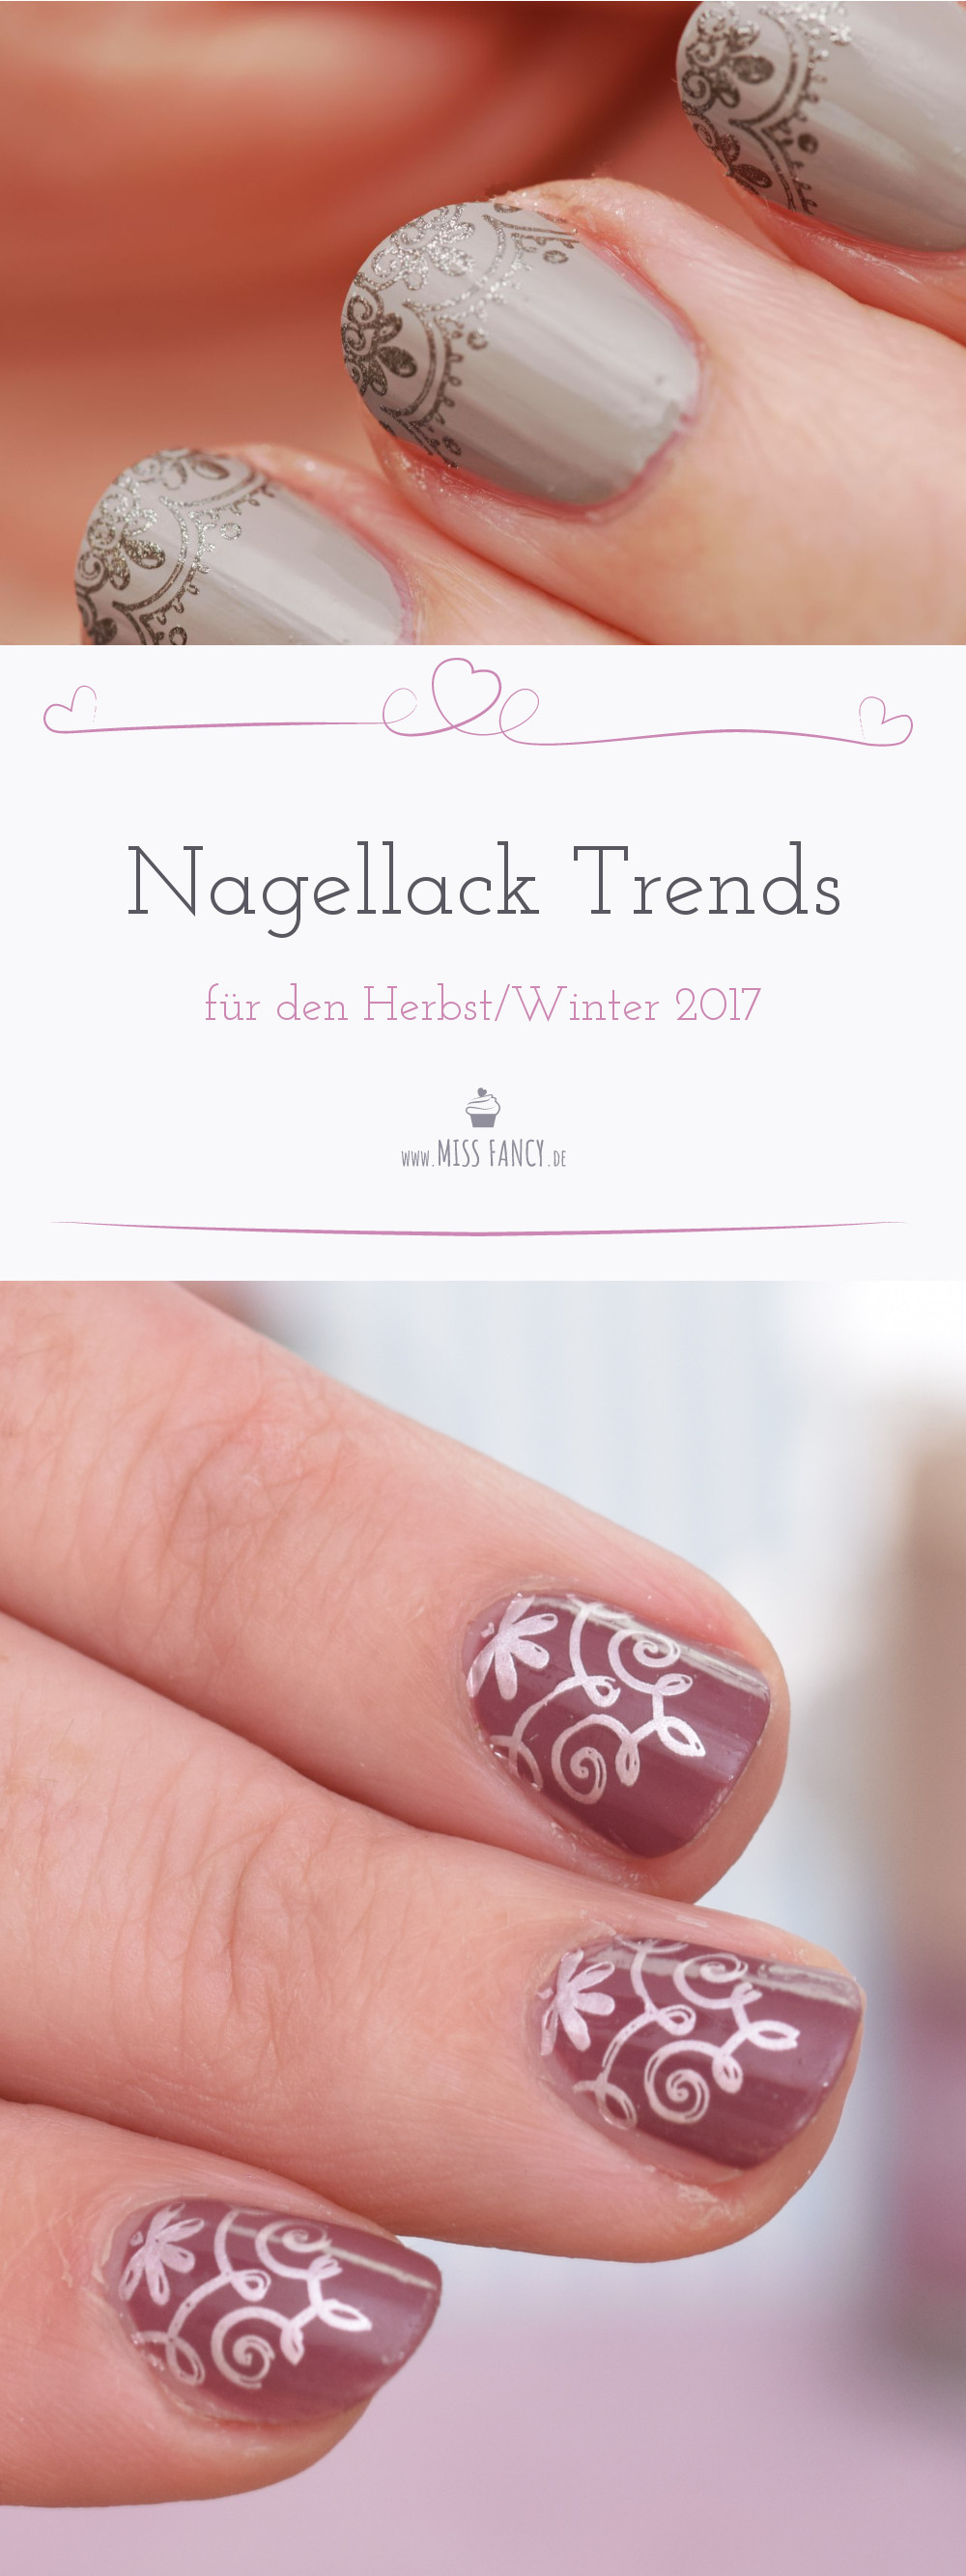 Nagellack Trendfarben Herbst 2017 | Miss Fancy - Food & Beauty Blog